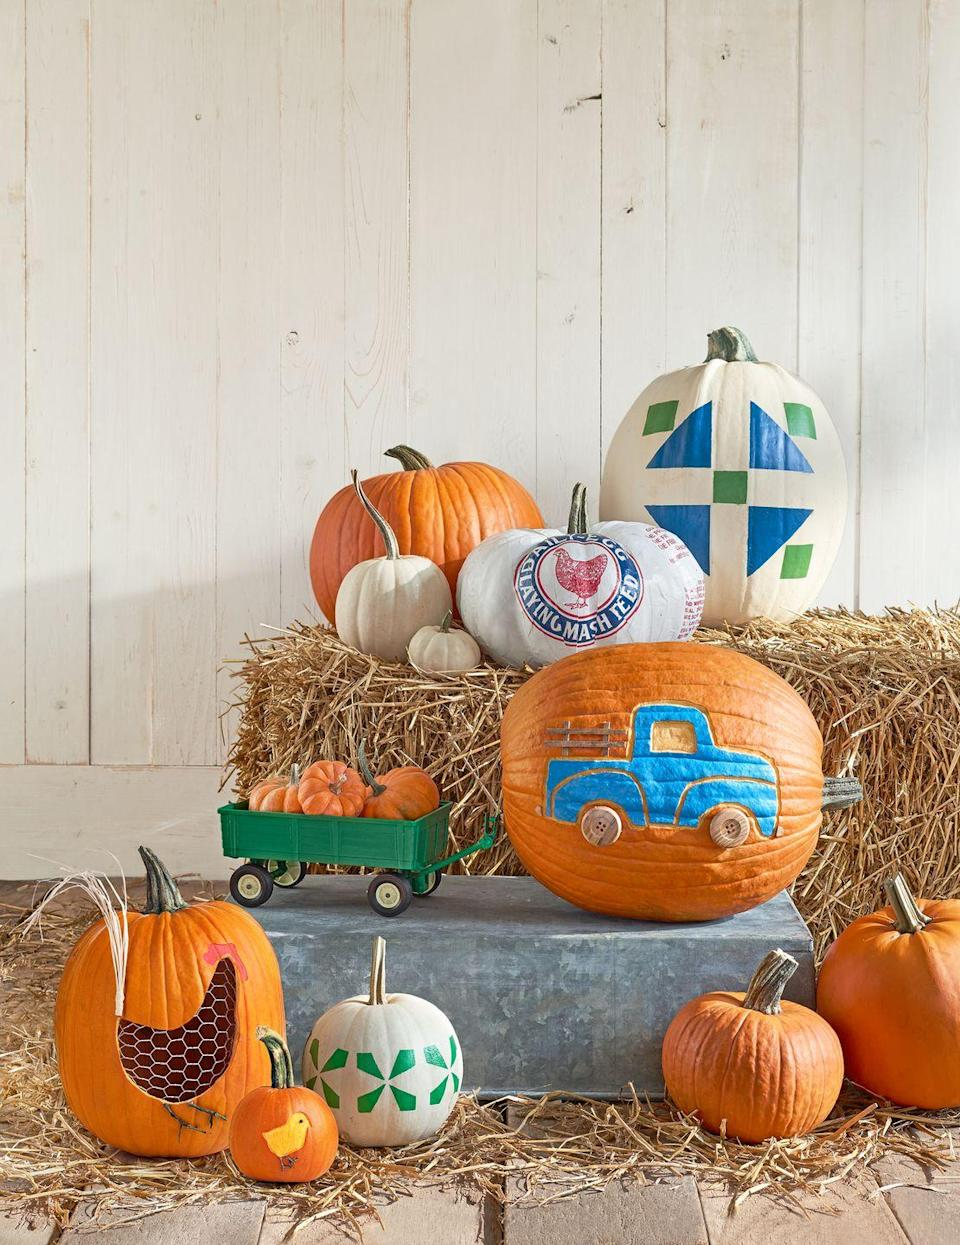 """<p>Put a smile on your little trucker's face with this sweet pumpkin design. Use wooden buttons as the wheels to make it extra special. <a href=""""http://clv.h-cdn.co/assets/downloads/1472485017_-_pumpkintemplates.pdf"""" rel=""""nofollow noopener"""" target=""""_blank"""" data-ylk=""""slk:Click here for the template"""" class=""""link rapid-noclick-resp"""">Click here for the template</a>. </p>"""